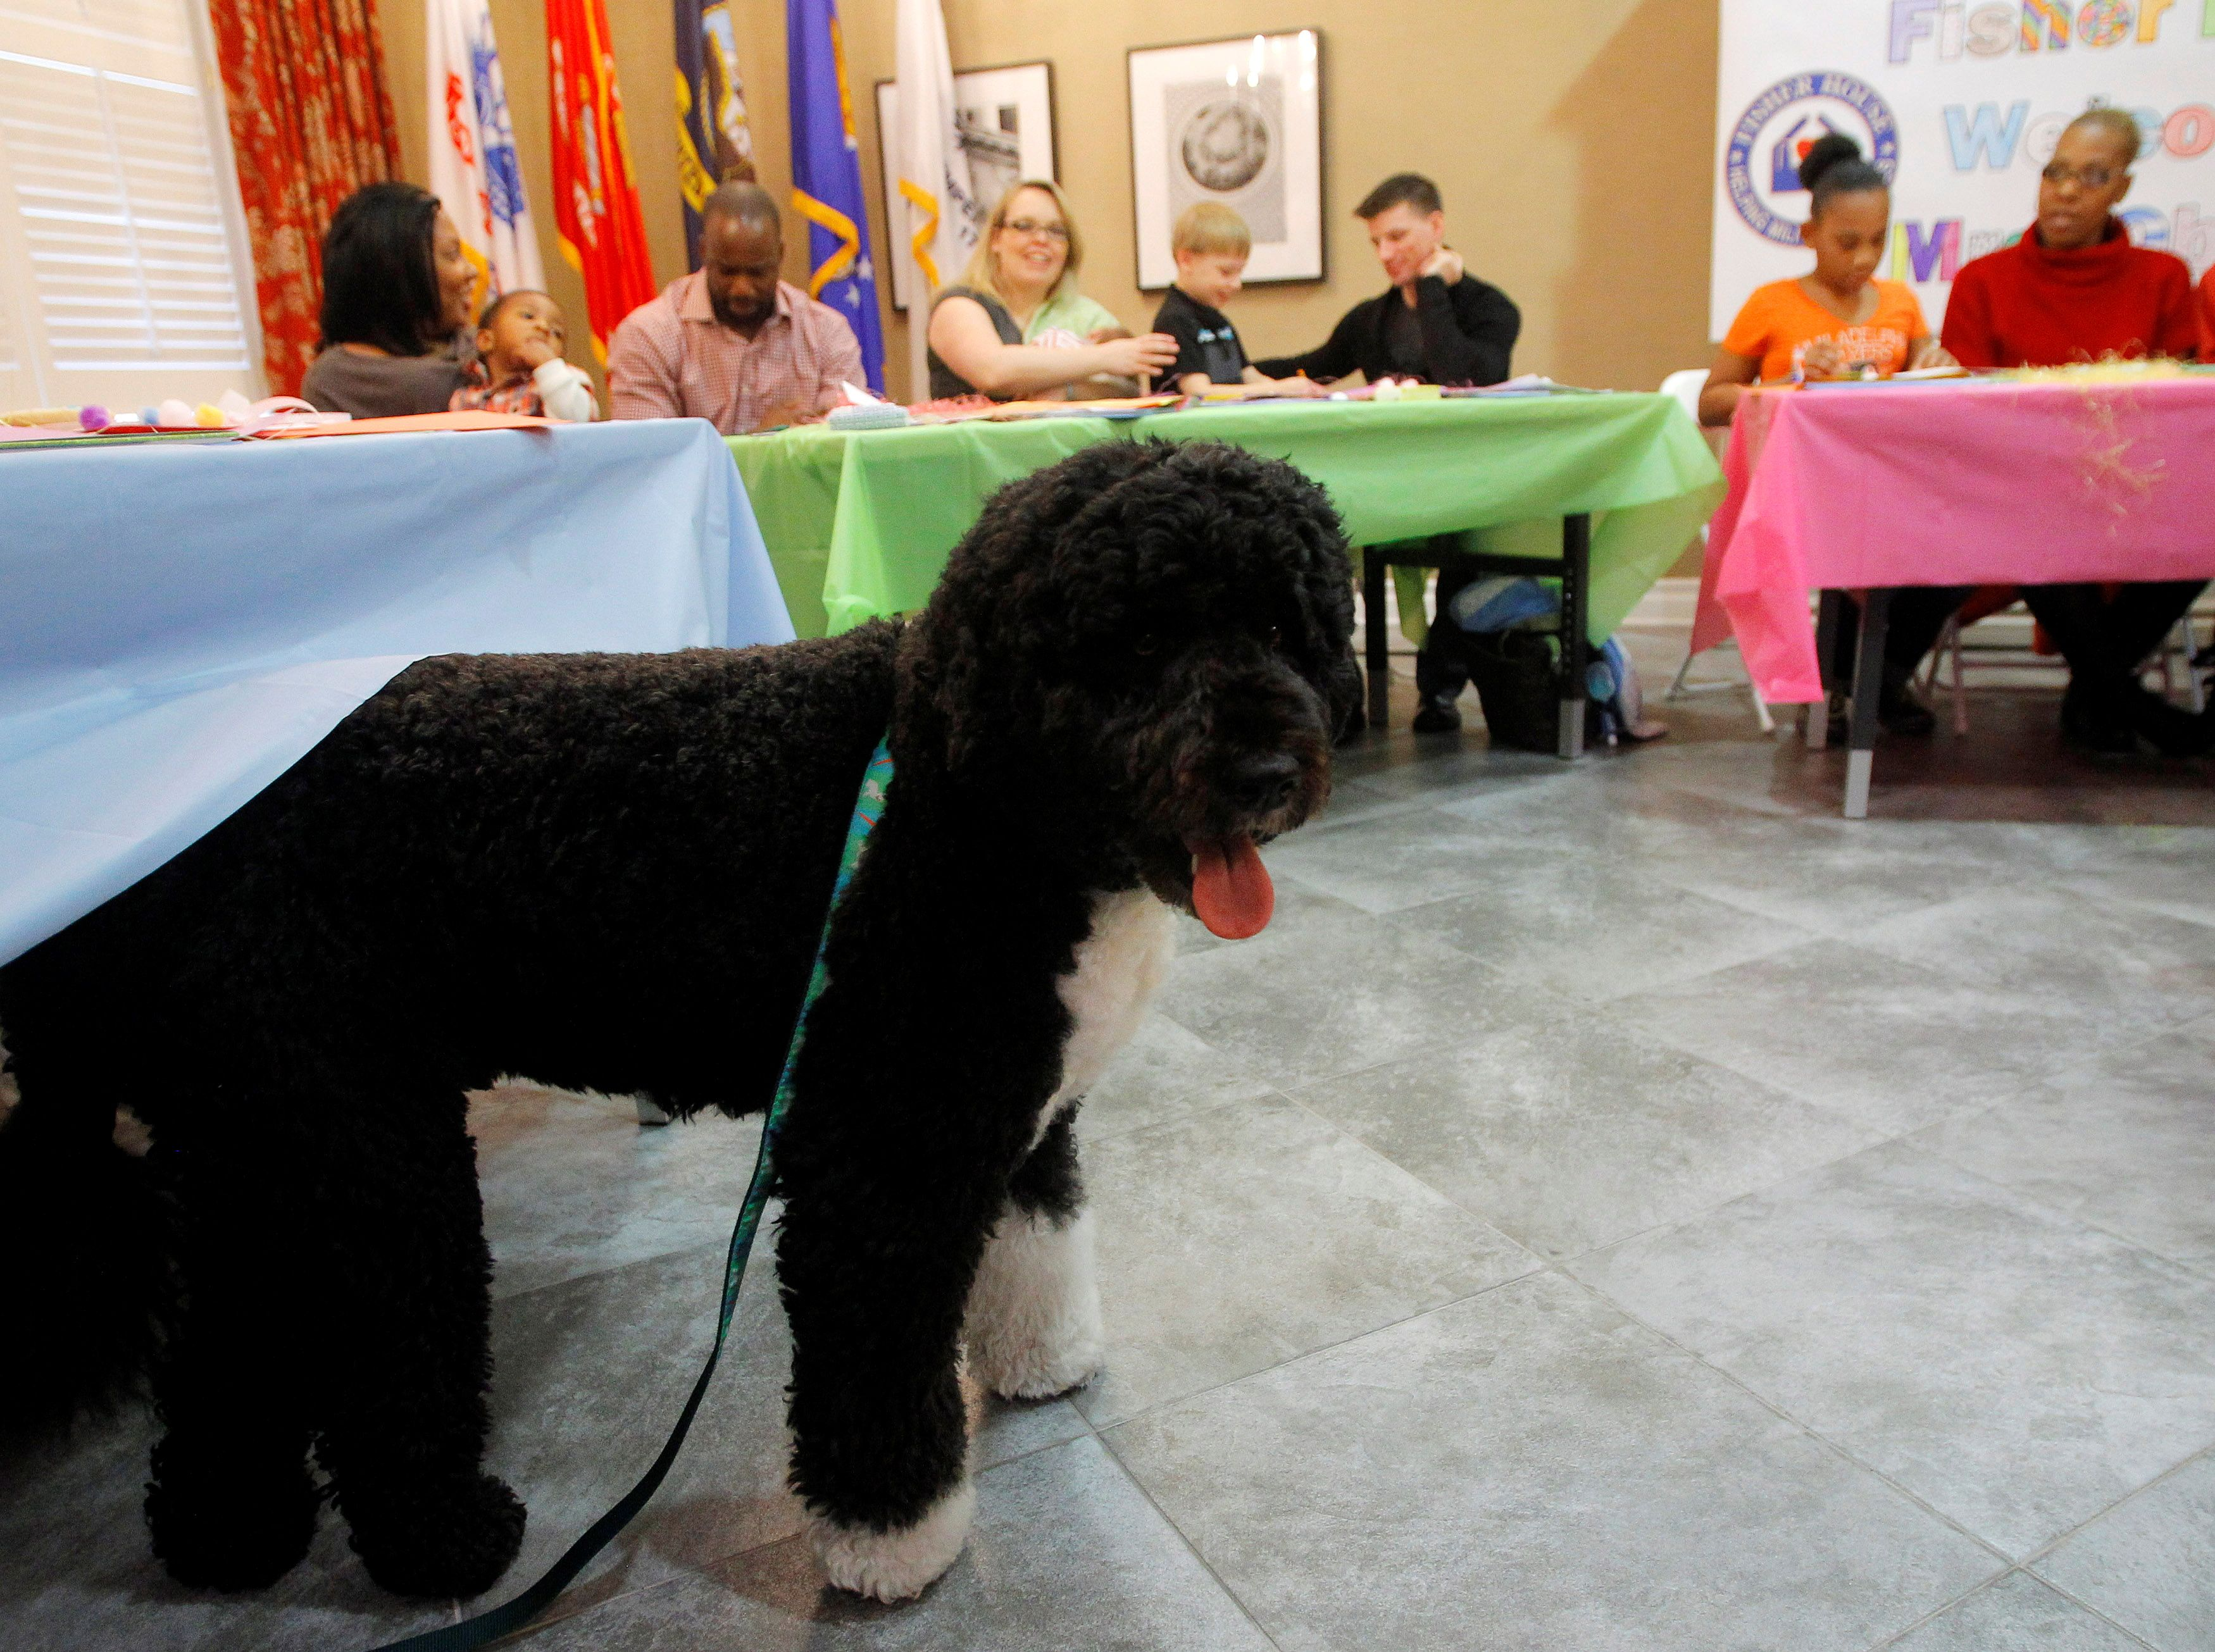 First dog Bo sneaks away under a table from U.S. First lady Michelle Obama (not pictured) while visiting military families before Easter at Fisher House in Bethesda, Maryland March 20, 2013.    REUTERS/Gary Cameron/File Photo